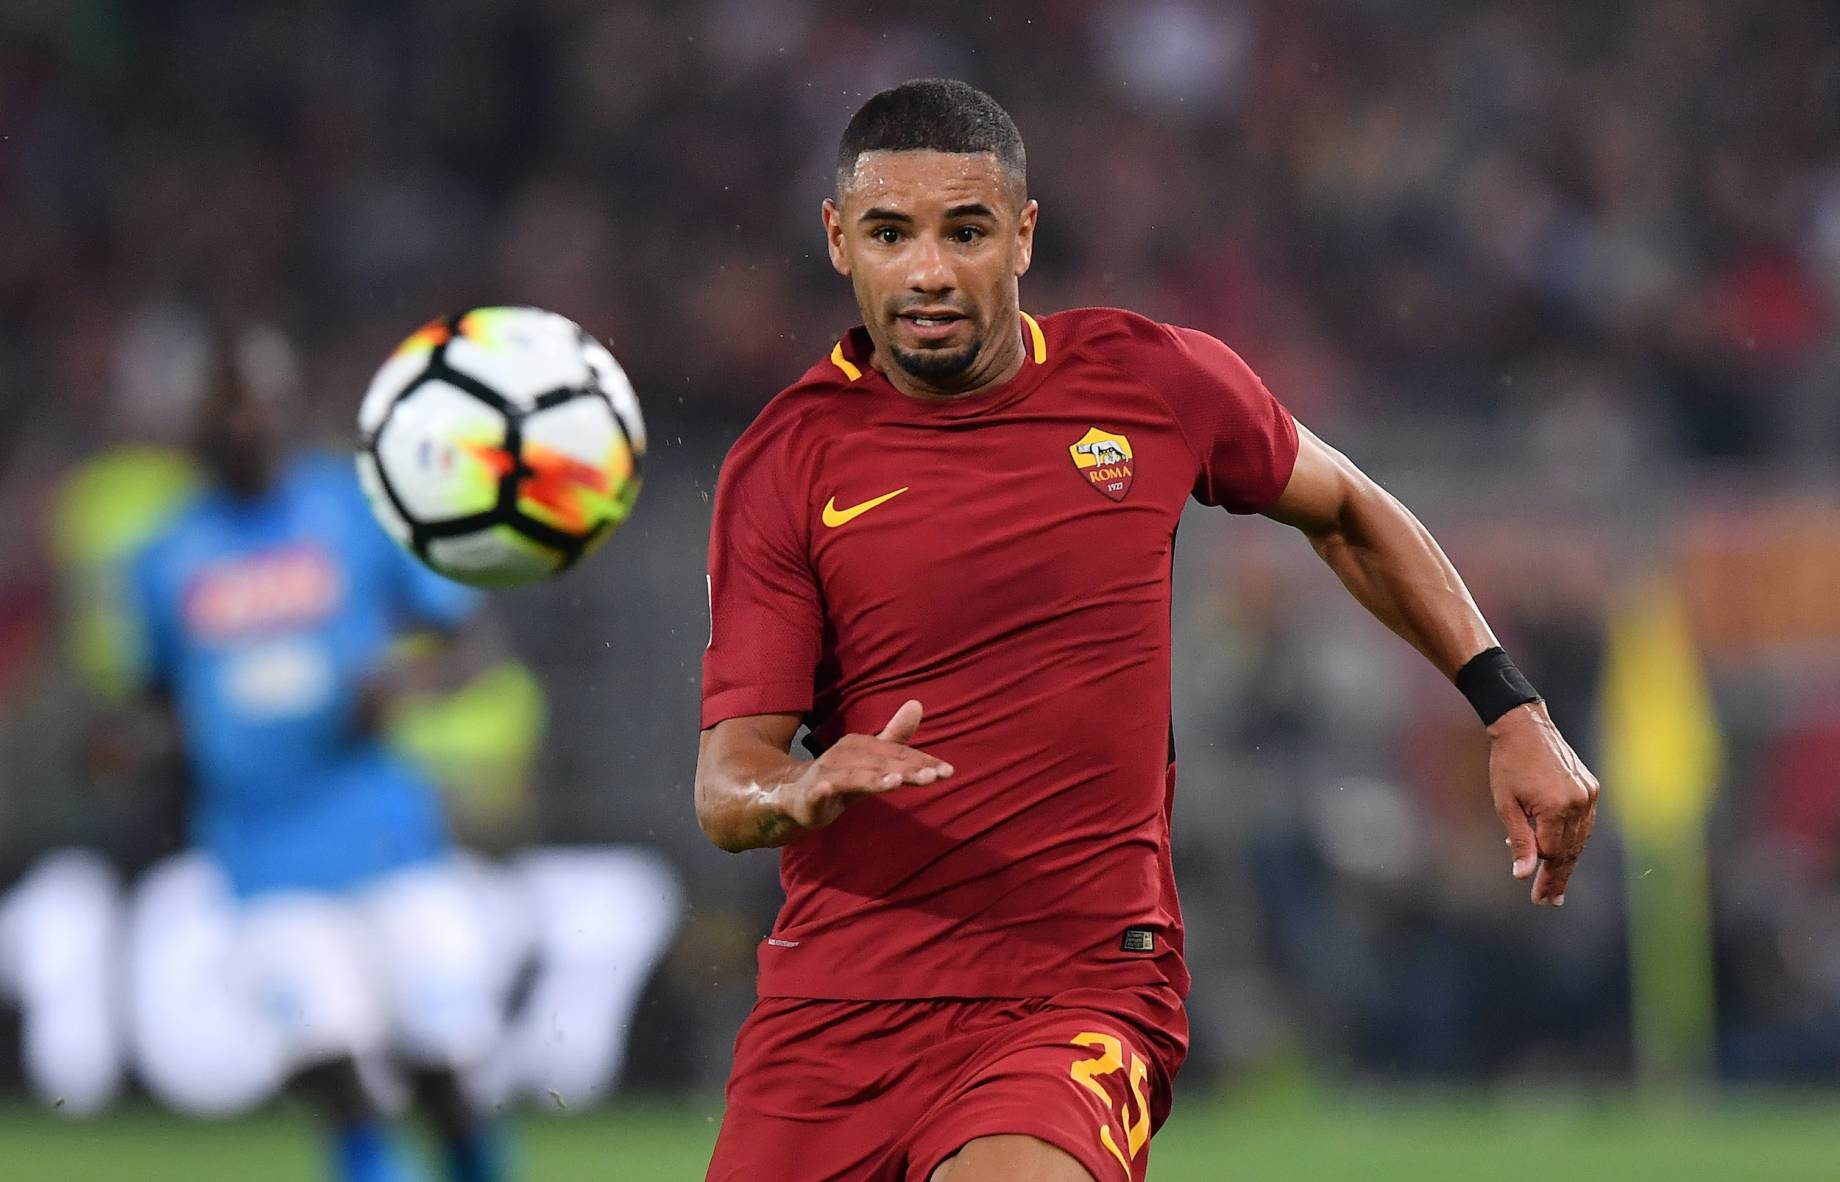 Gianluca Di Marzio :: Torino, agreement reached with Roma for Bruno Peres